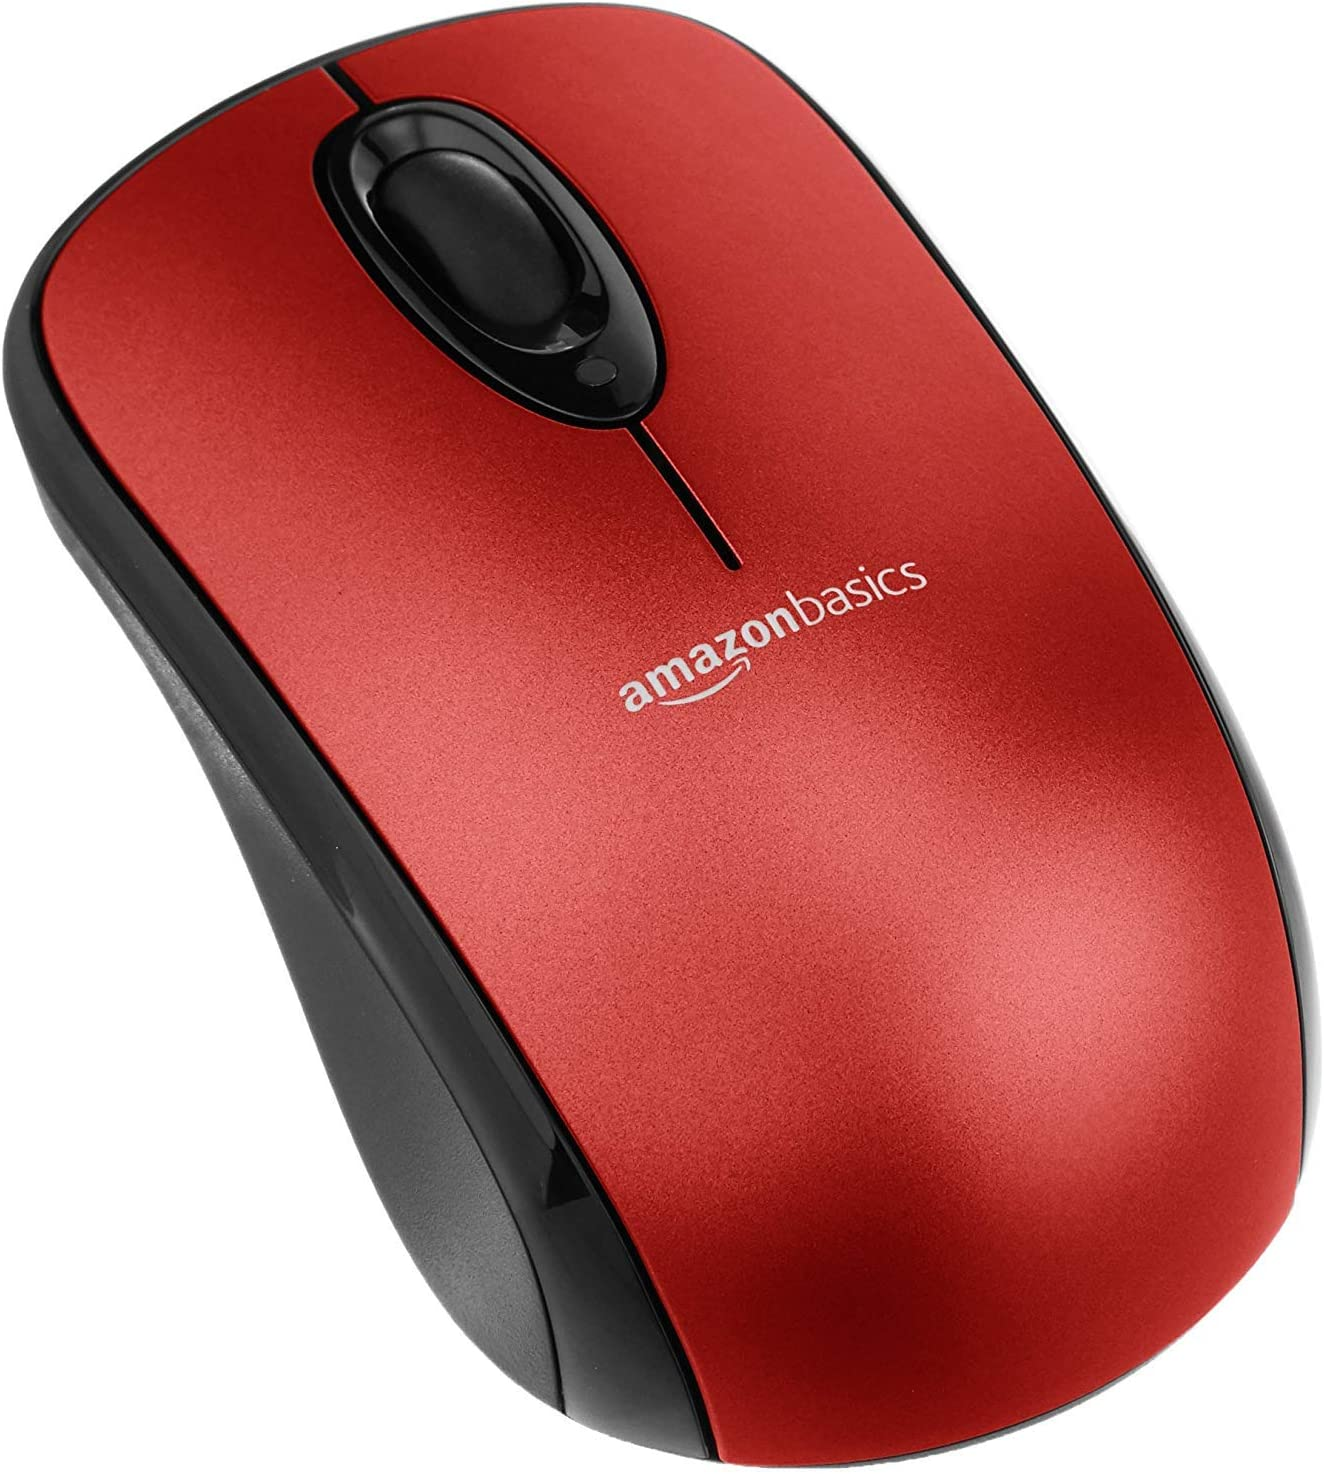 AmazonBasics Wireless Computer Mouse with USB Nano Receiver - Red